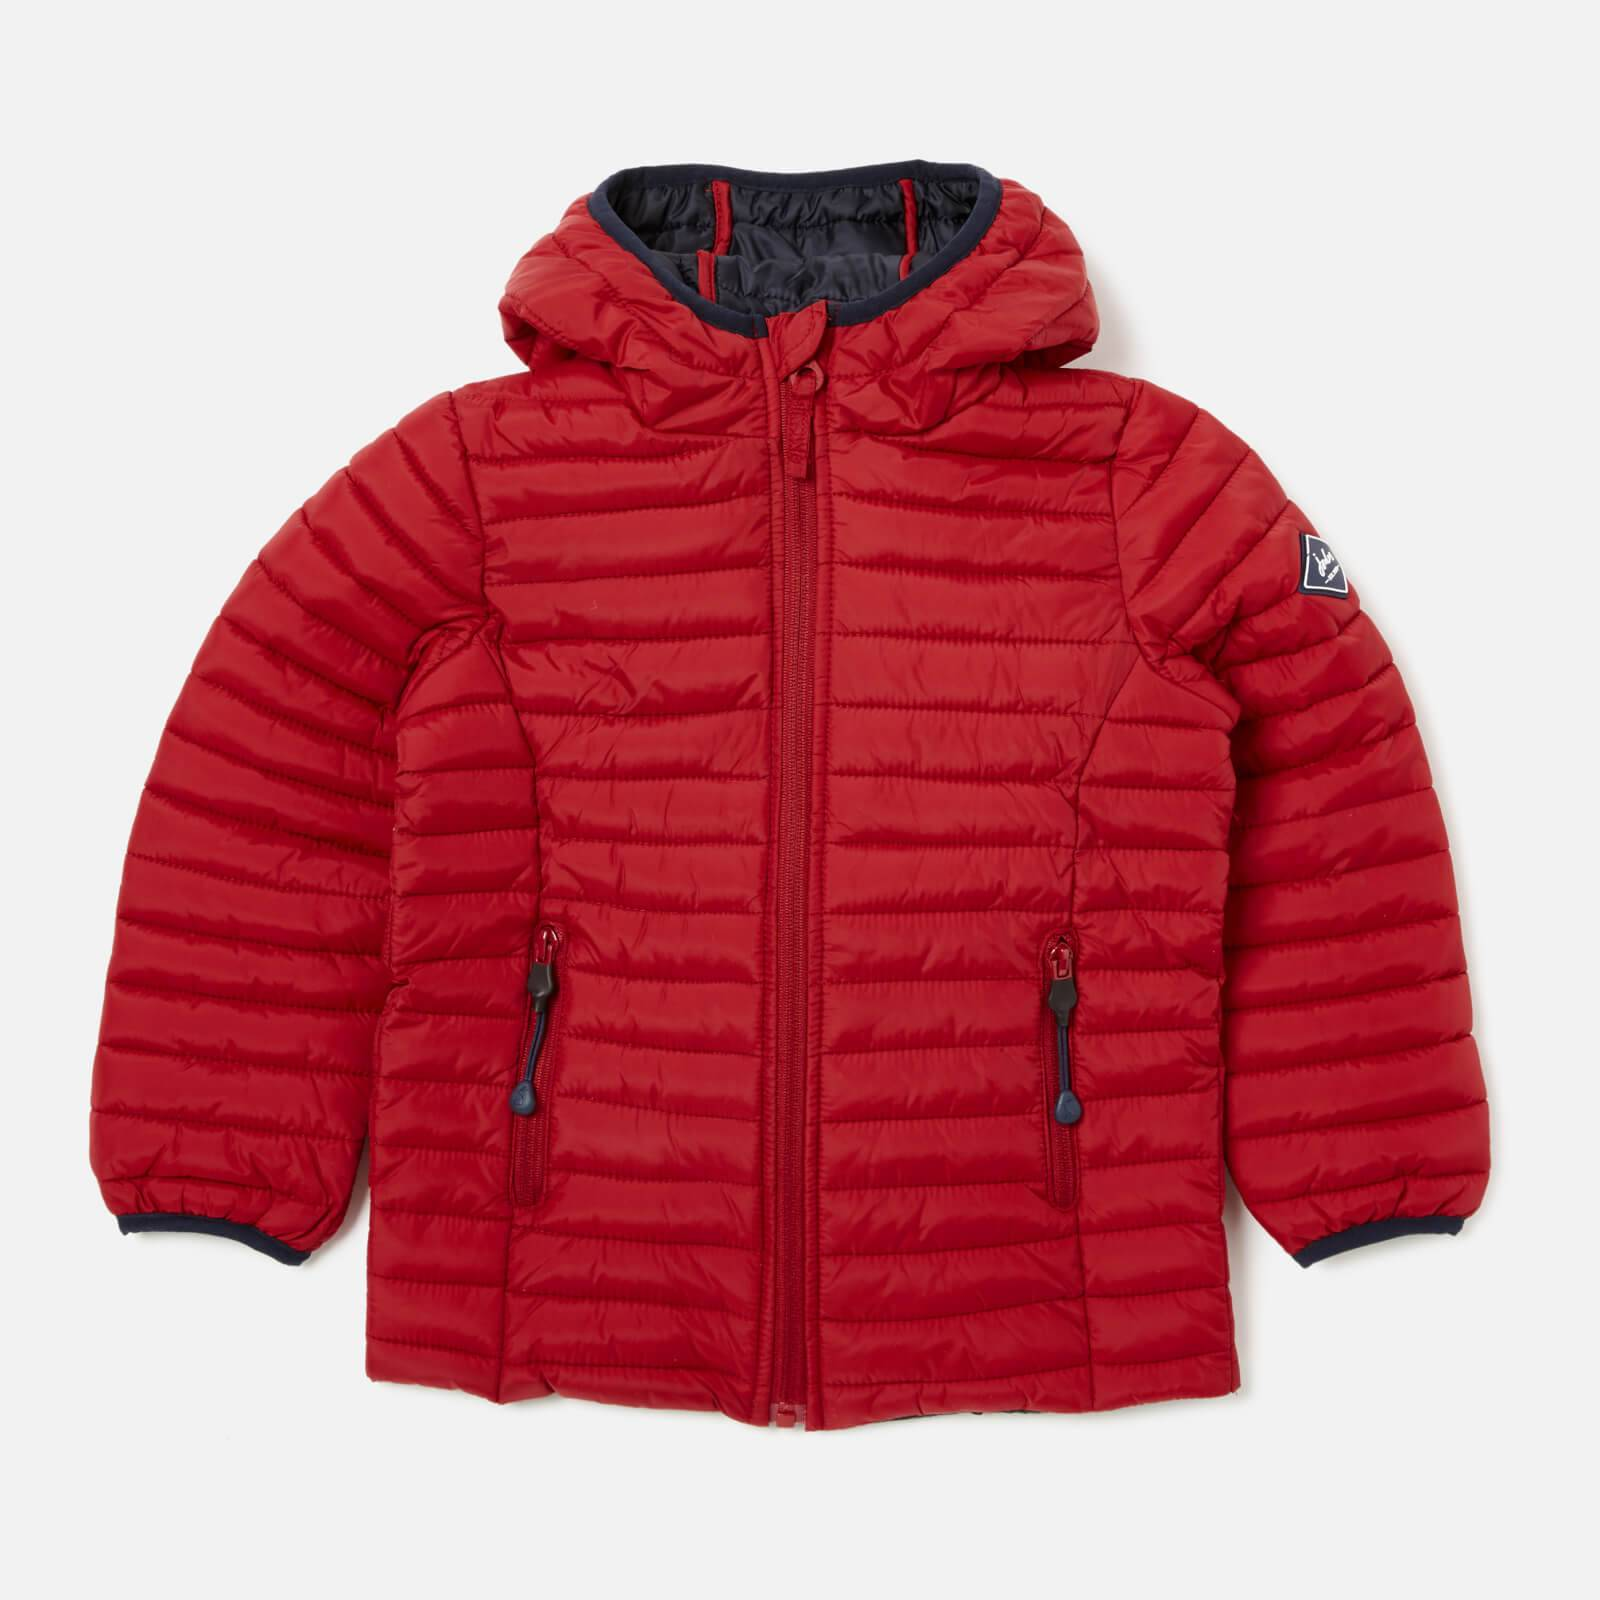 Joules Boys' Cairn Padded Jacket - Red - 6 Years - Red